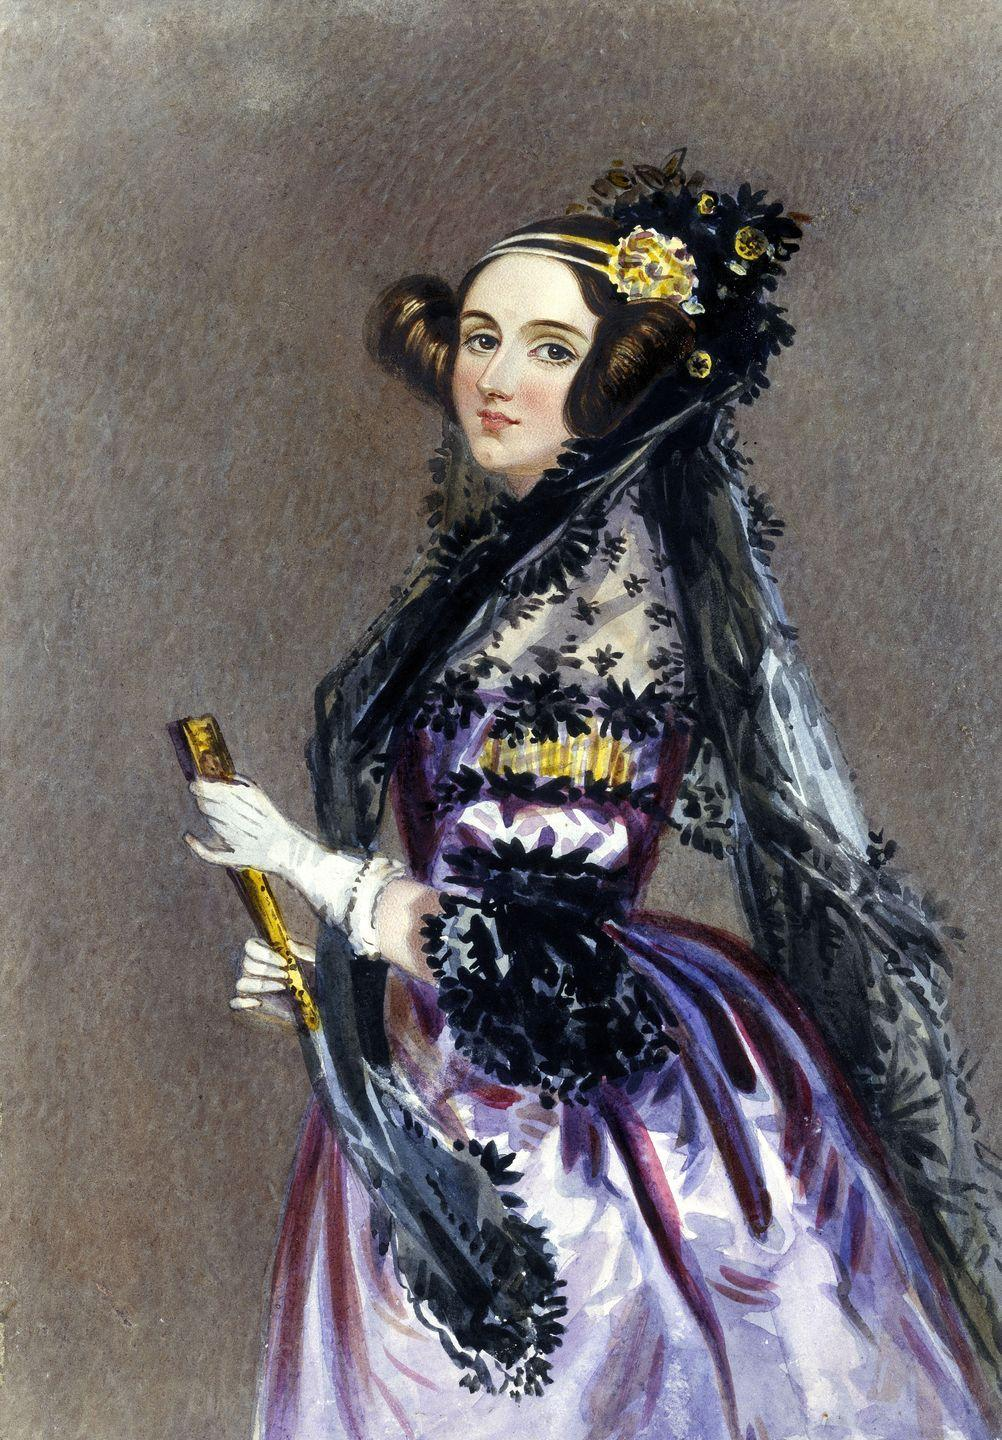 <p>Ada Lovelace, often referred to as the first computer programmer, translated from French (and annotated in detail) the notes of Italian mathematician Luigi Menabrea's treatise on the work of famed mathematician and inventor Charles Babbage. </p><p>Her father, the poet Lord Byron, left at an early age, so her mother, a mathematician, ensured that Lovelace was well-educated and schooled in mathematics. At 17, Lovelace met Babbage at a party, and was captivated by his mathematical musings and curious contraptions. She drafted the first computer program, which his analogue calculation machine, the Analytical Engine, could use to calculate Bernoulli numbers.</p>